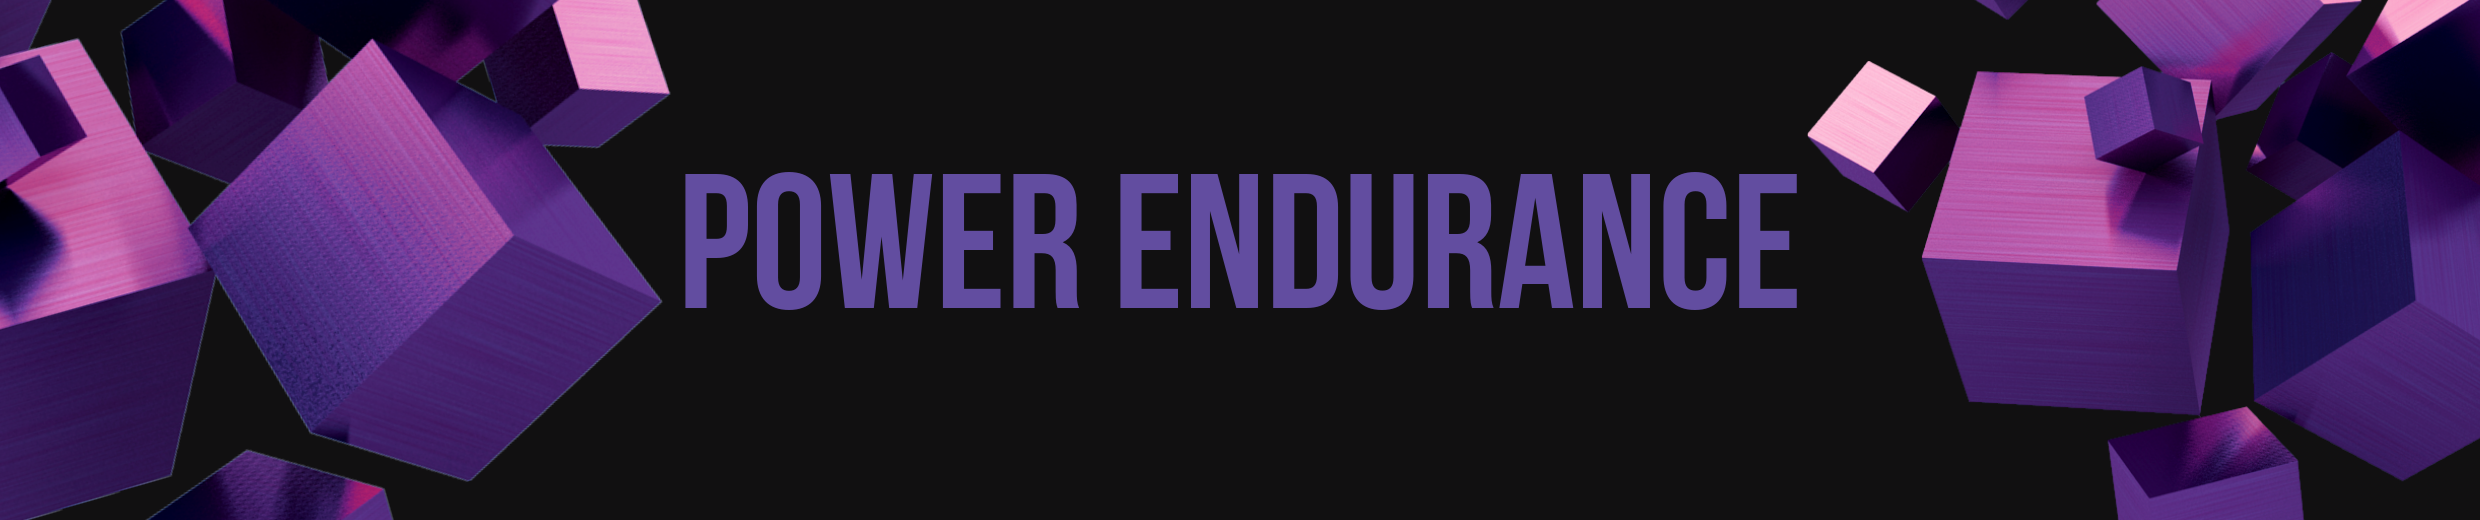 Power Endurance Drills Banner